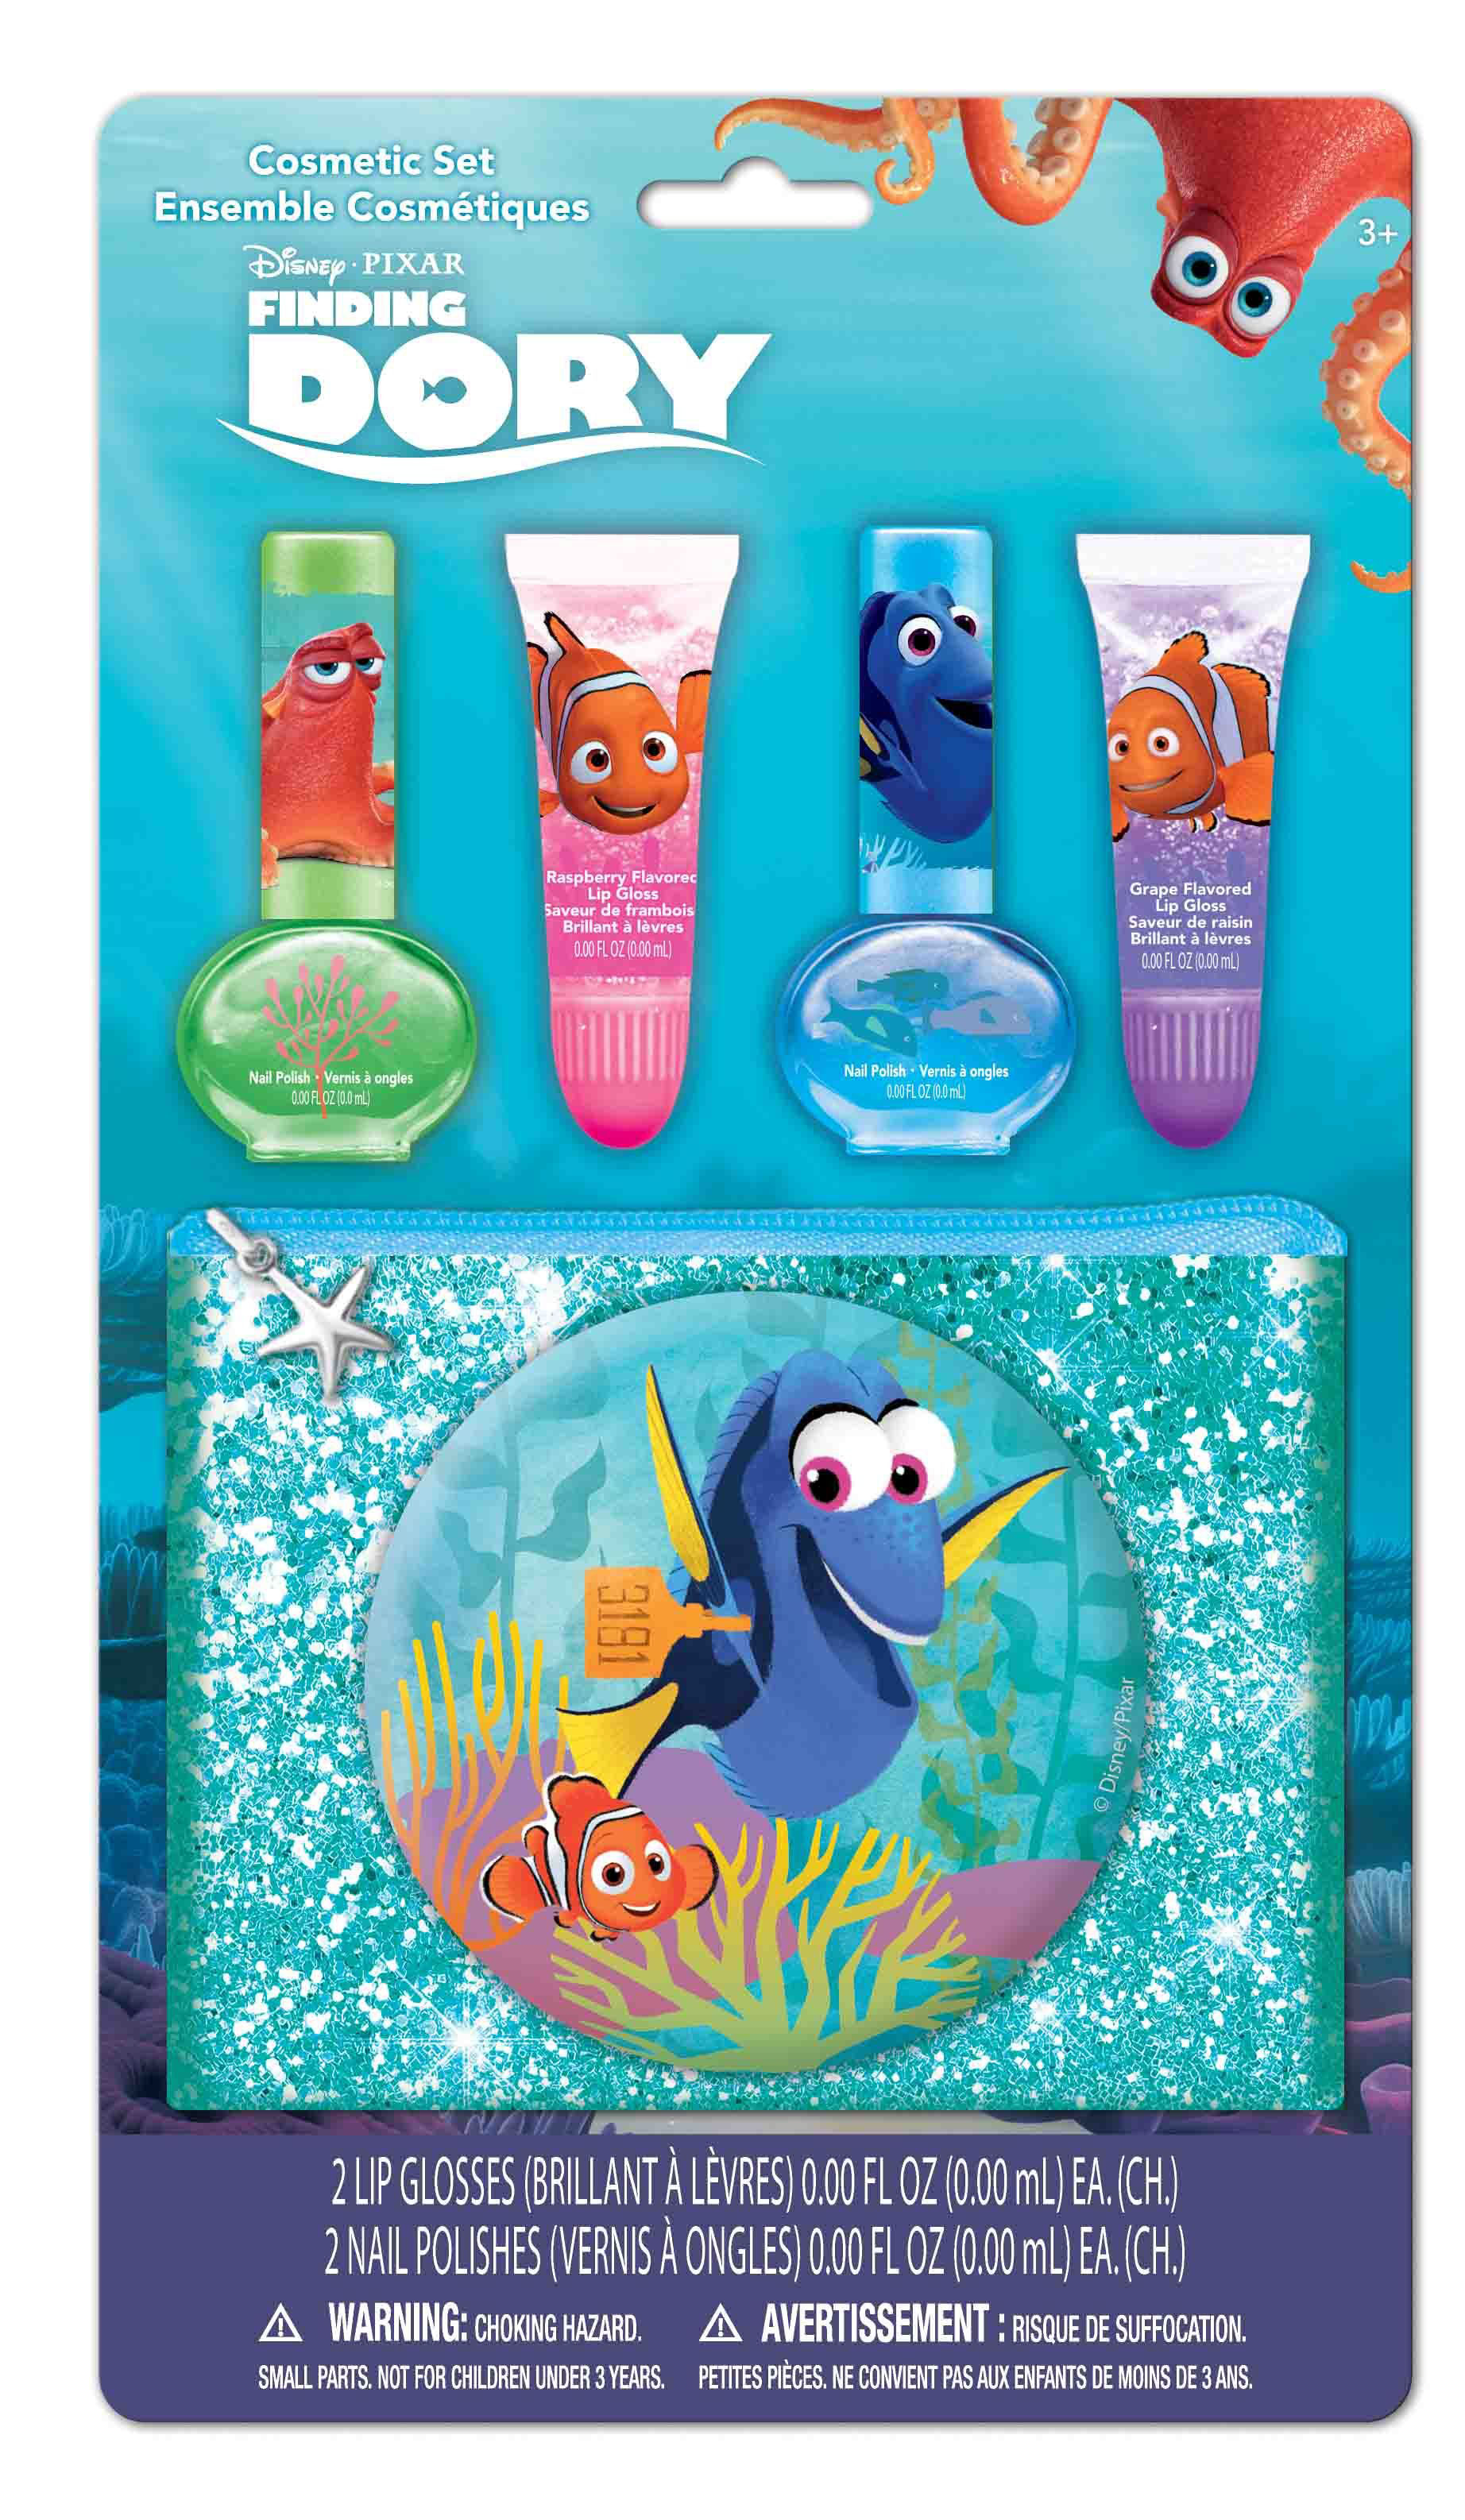 0719565363542 - FINDING DORY NAIL POLISH & LIP GLOSS COSMETIC SET W/ POUCH